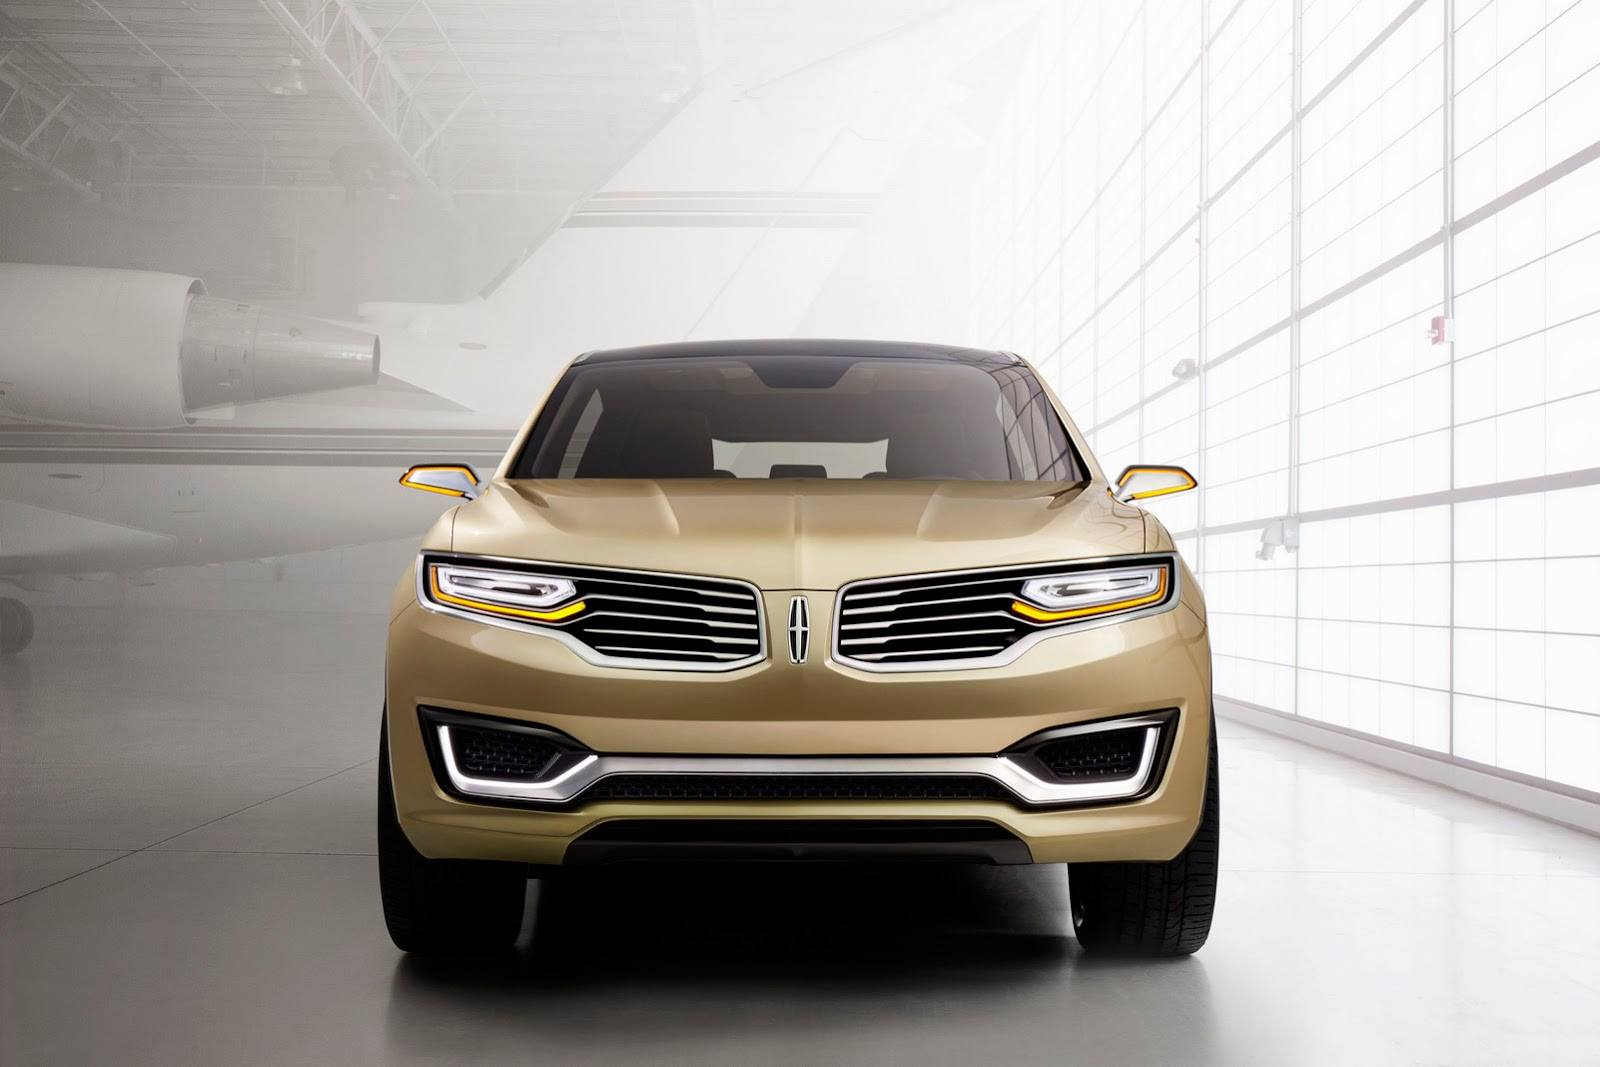 https://s1.cdn.autoevolution.com/images/news/lincoln-mkx-concept-exposed-at-2014-beijing-auto-show-video-photo-gallery-80269_1.jpg